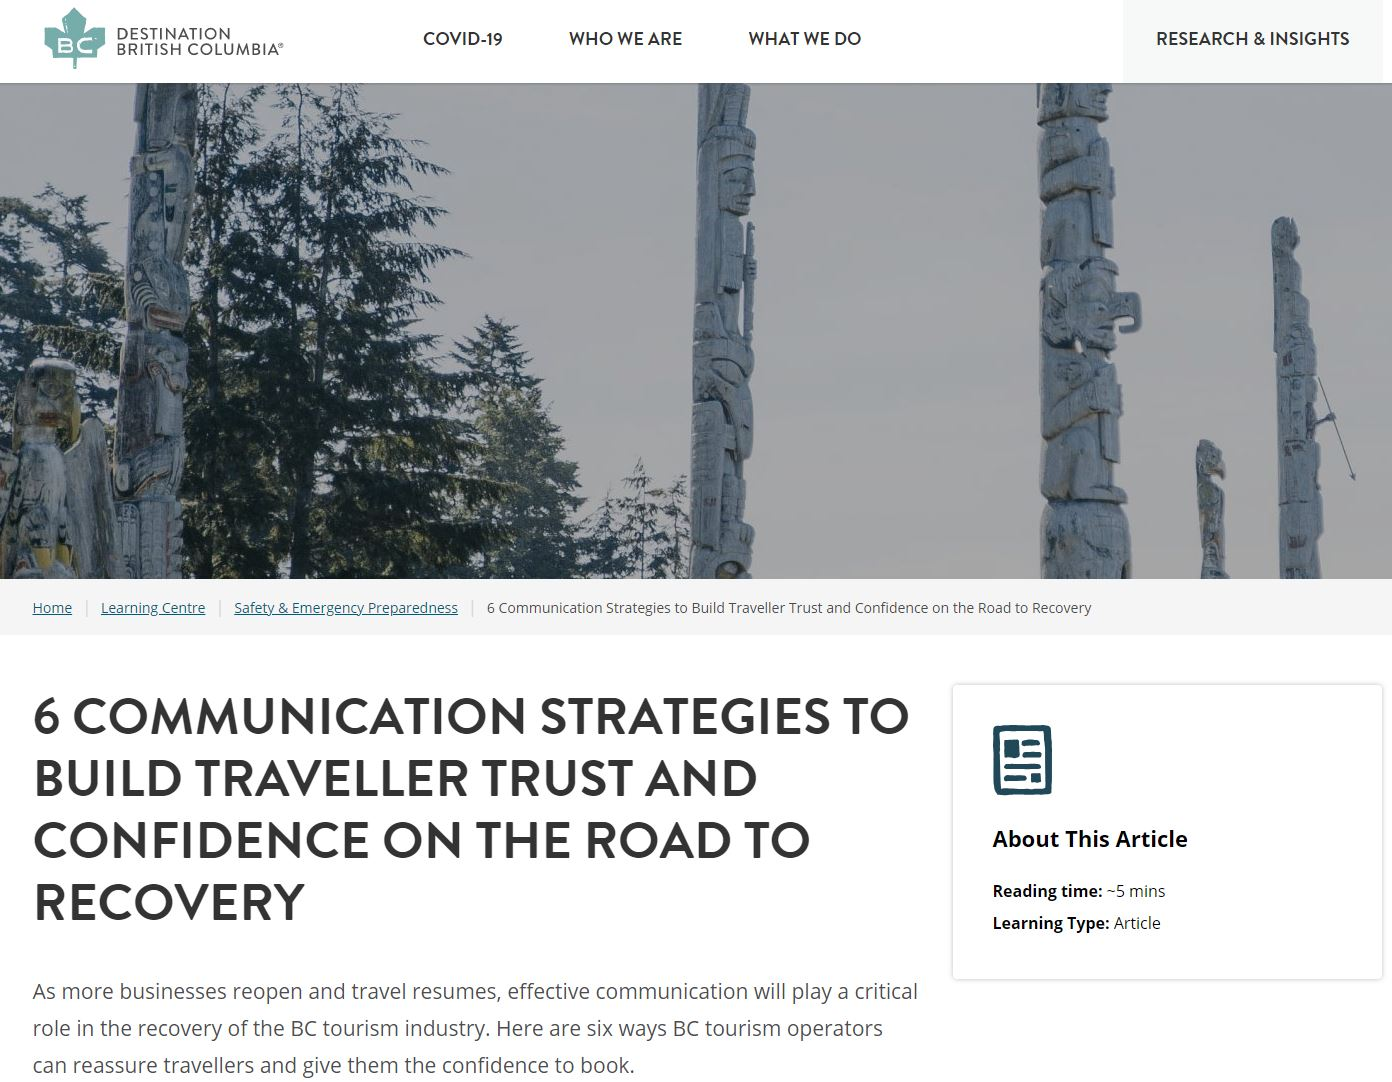 6 Communication Strategies to Build Consumer Trust and Confidence on the Road to Recovery